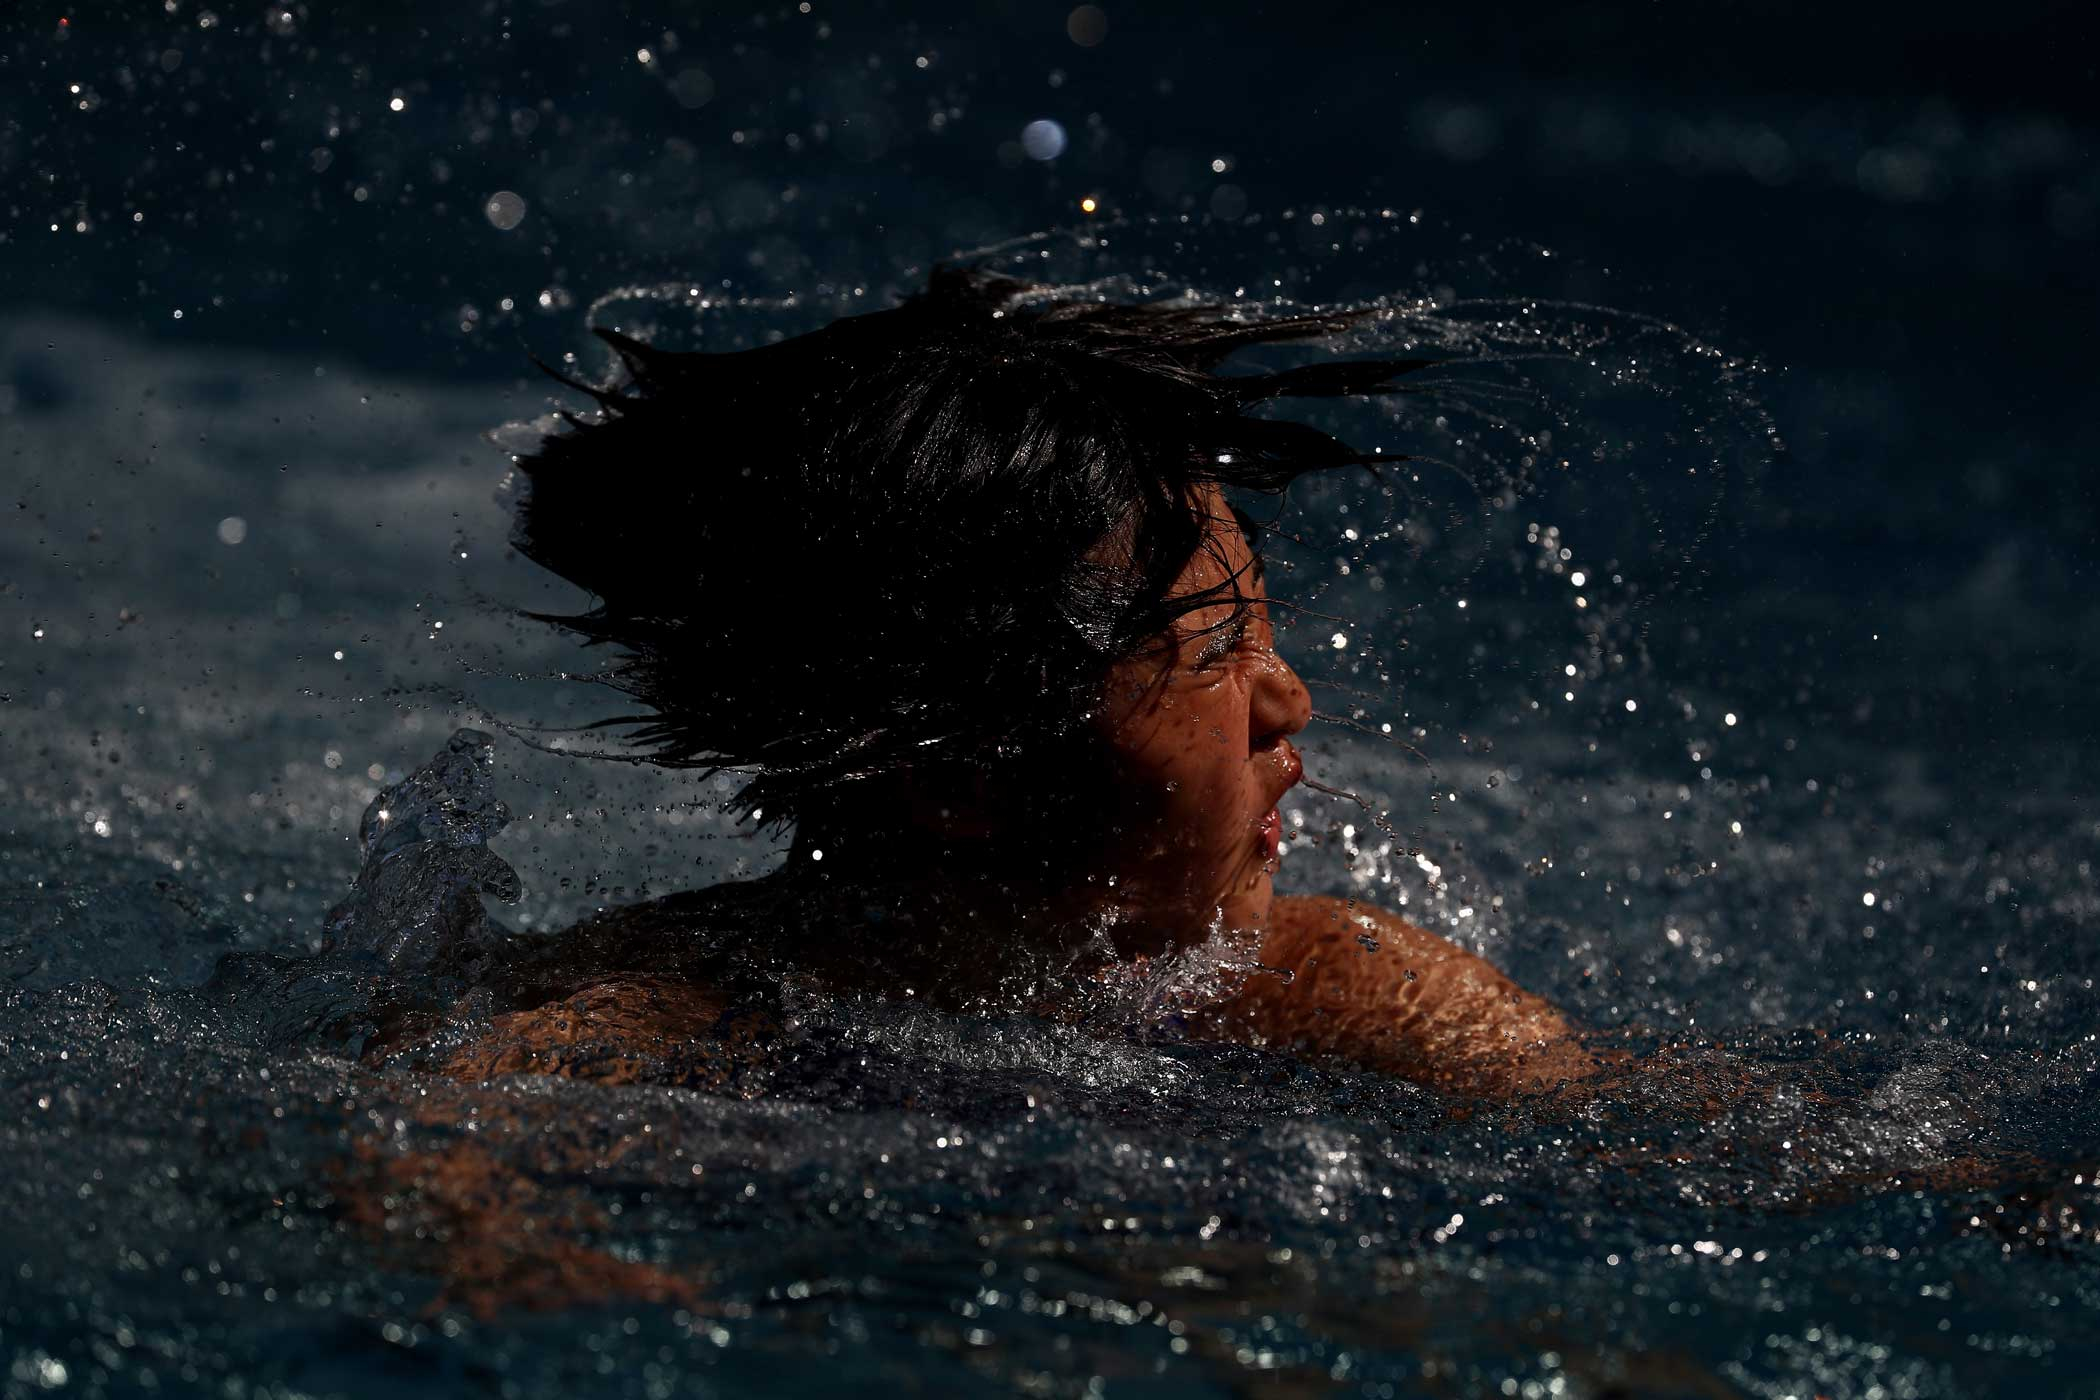 Kim Mi Rae of Democratic People's Republic of Korea practices during a diving training session at the Rio Olympics on Aug. 15.